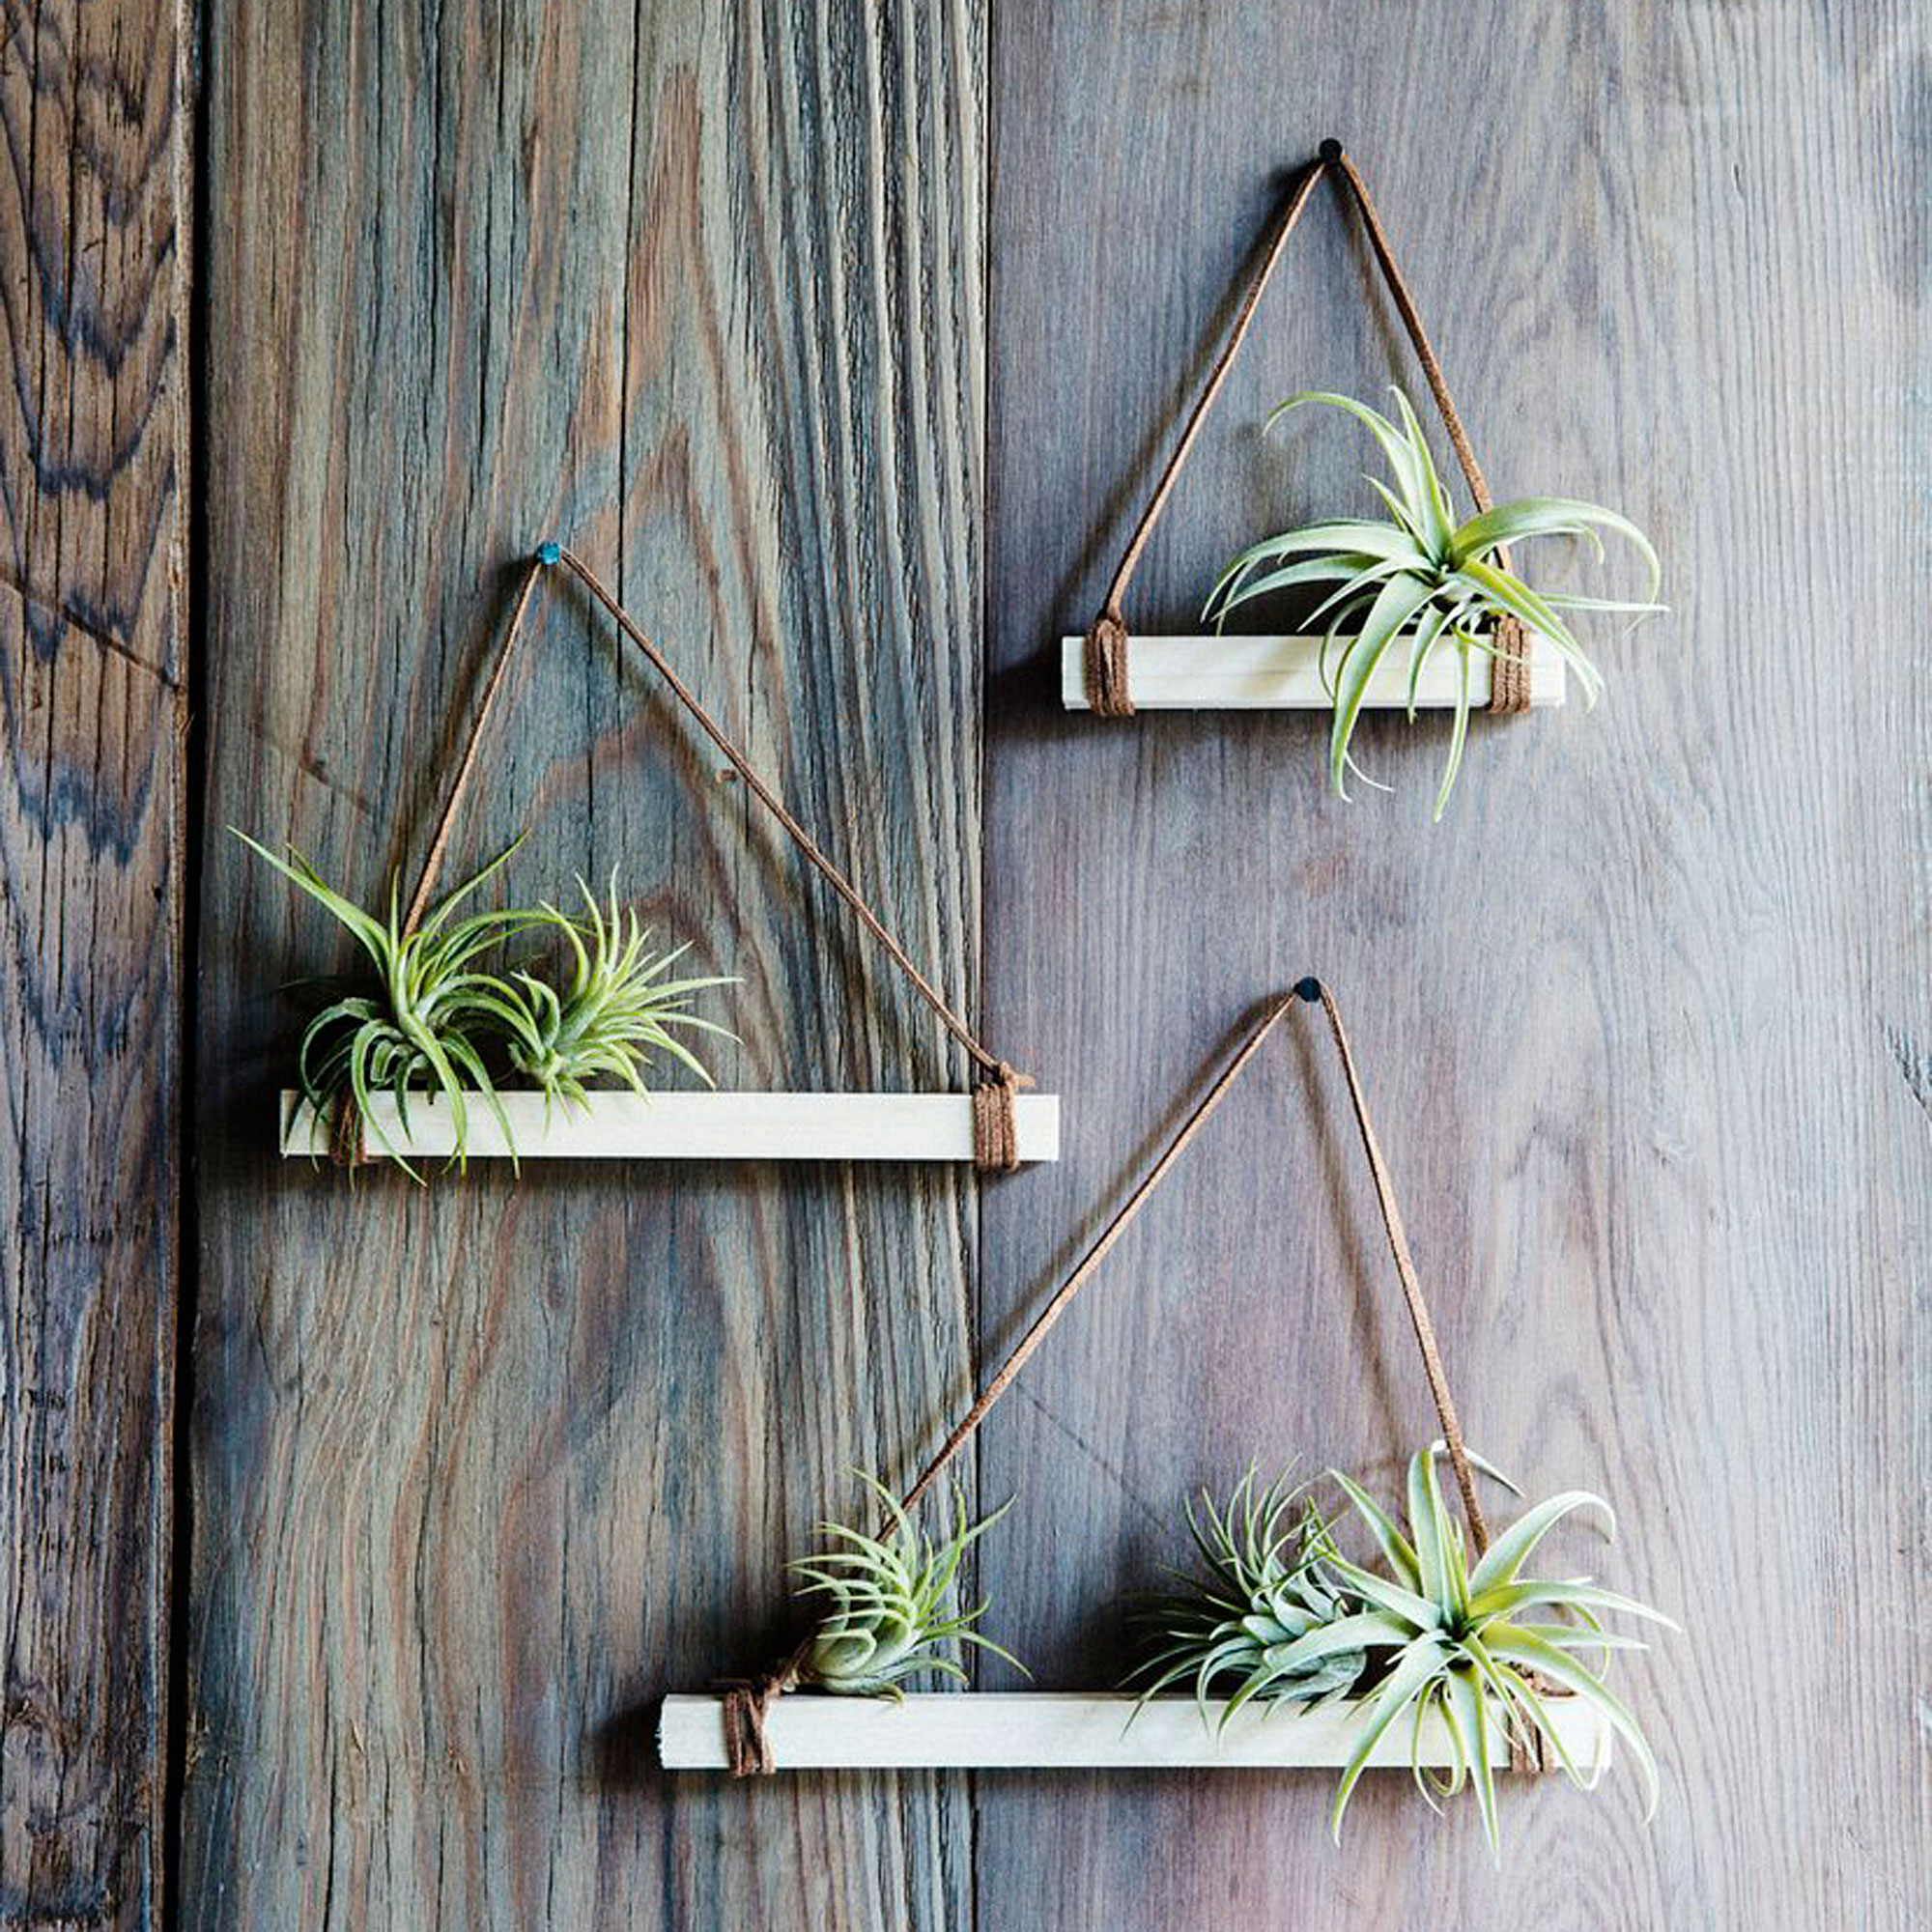 10 Ways to Decorate with Air Plants